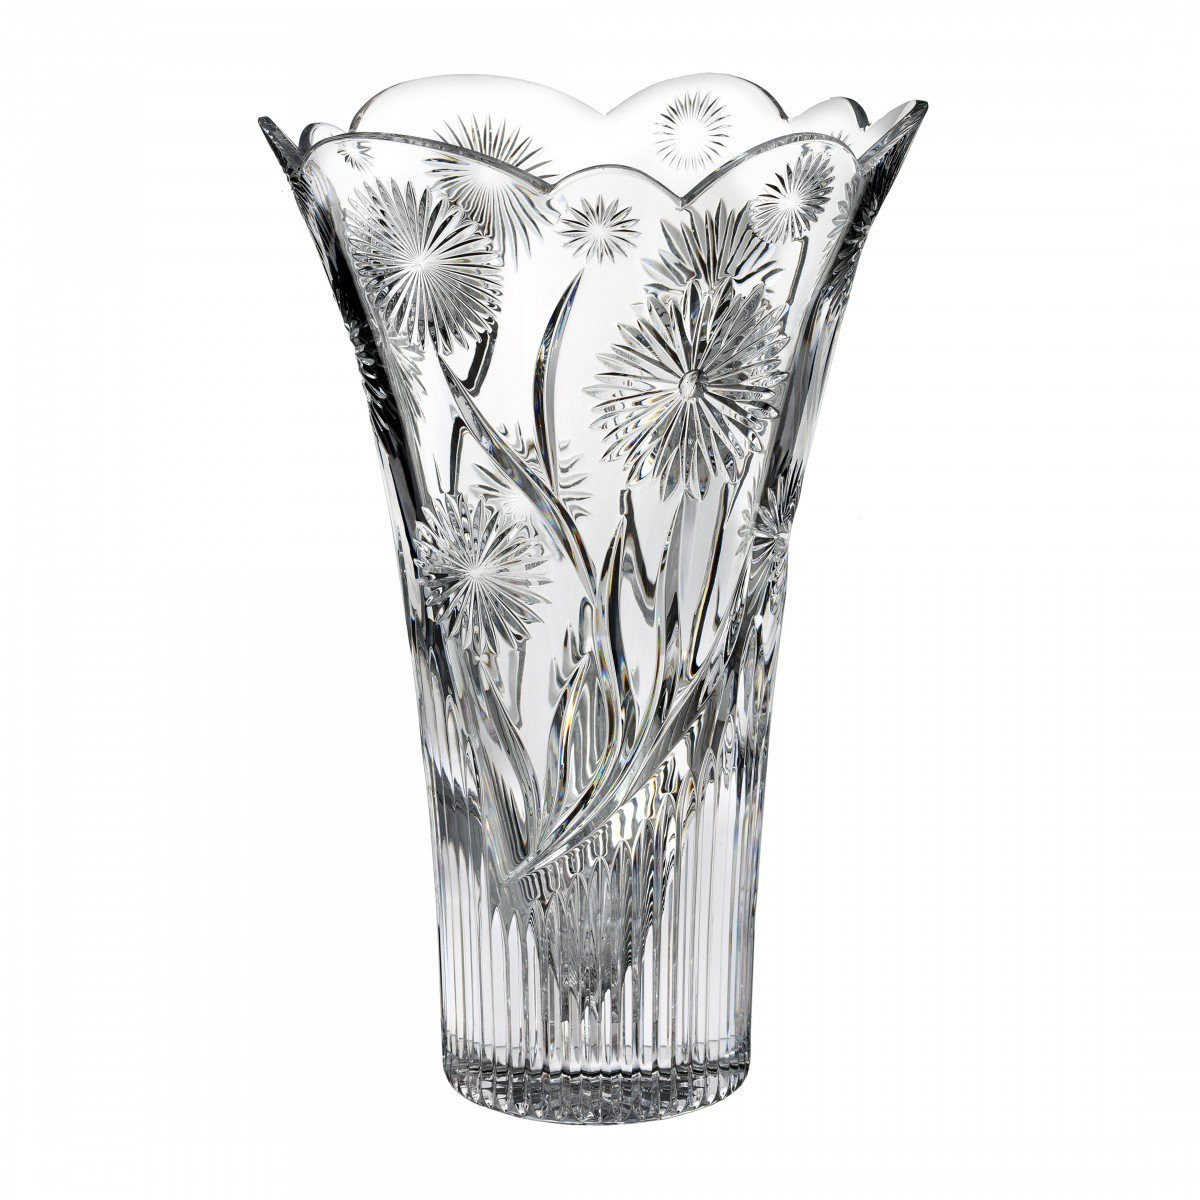 retired waterford crystal vase patterns of billy briggs daisy 12in vase discontinued house of waterford pertaining to billy briggs daisy 12in vase discontinued